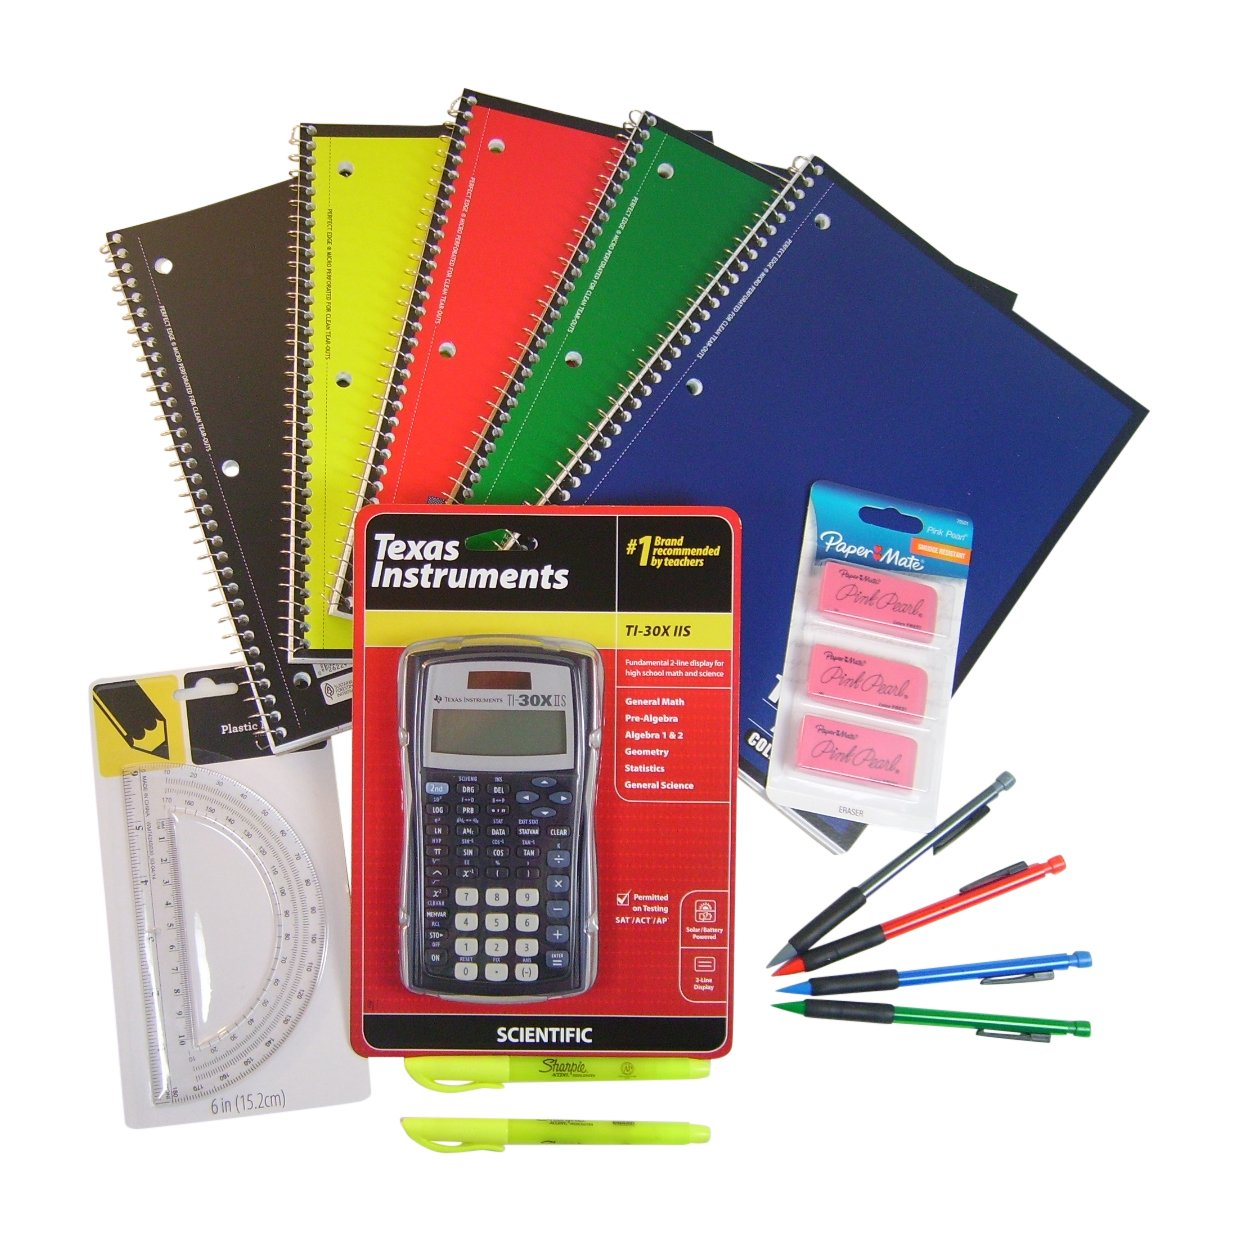 Back to High School & College 14 Item Bundle with Texas Instruments TI-30X IIS Scientific Calculator with School Supplies